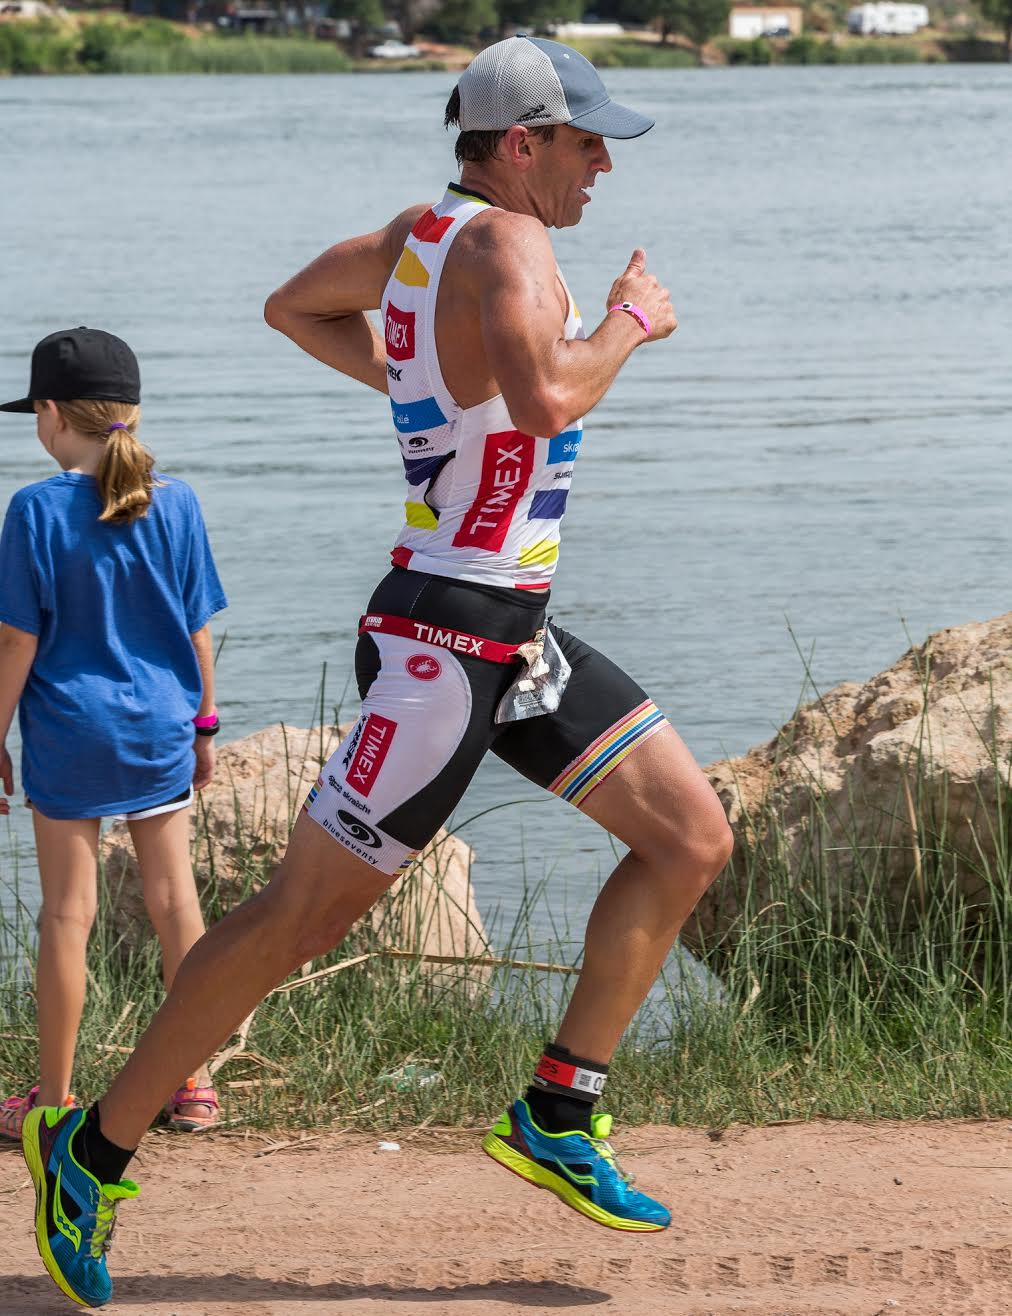 Tim on his way to an age group win in TX